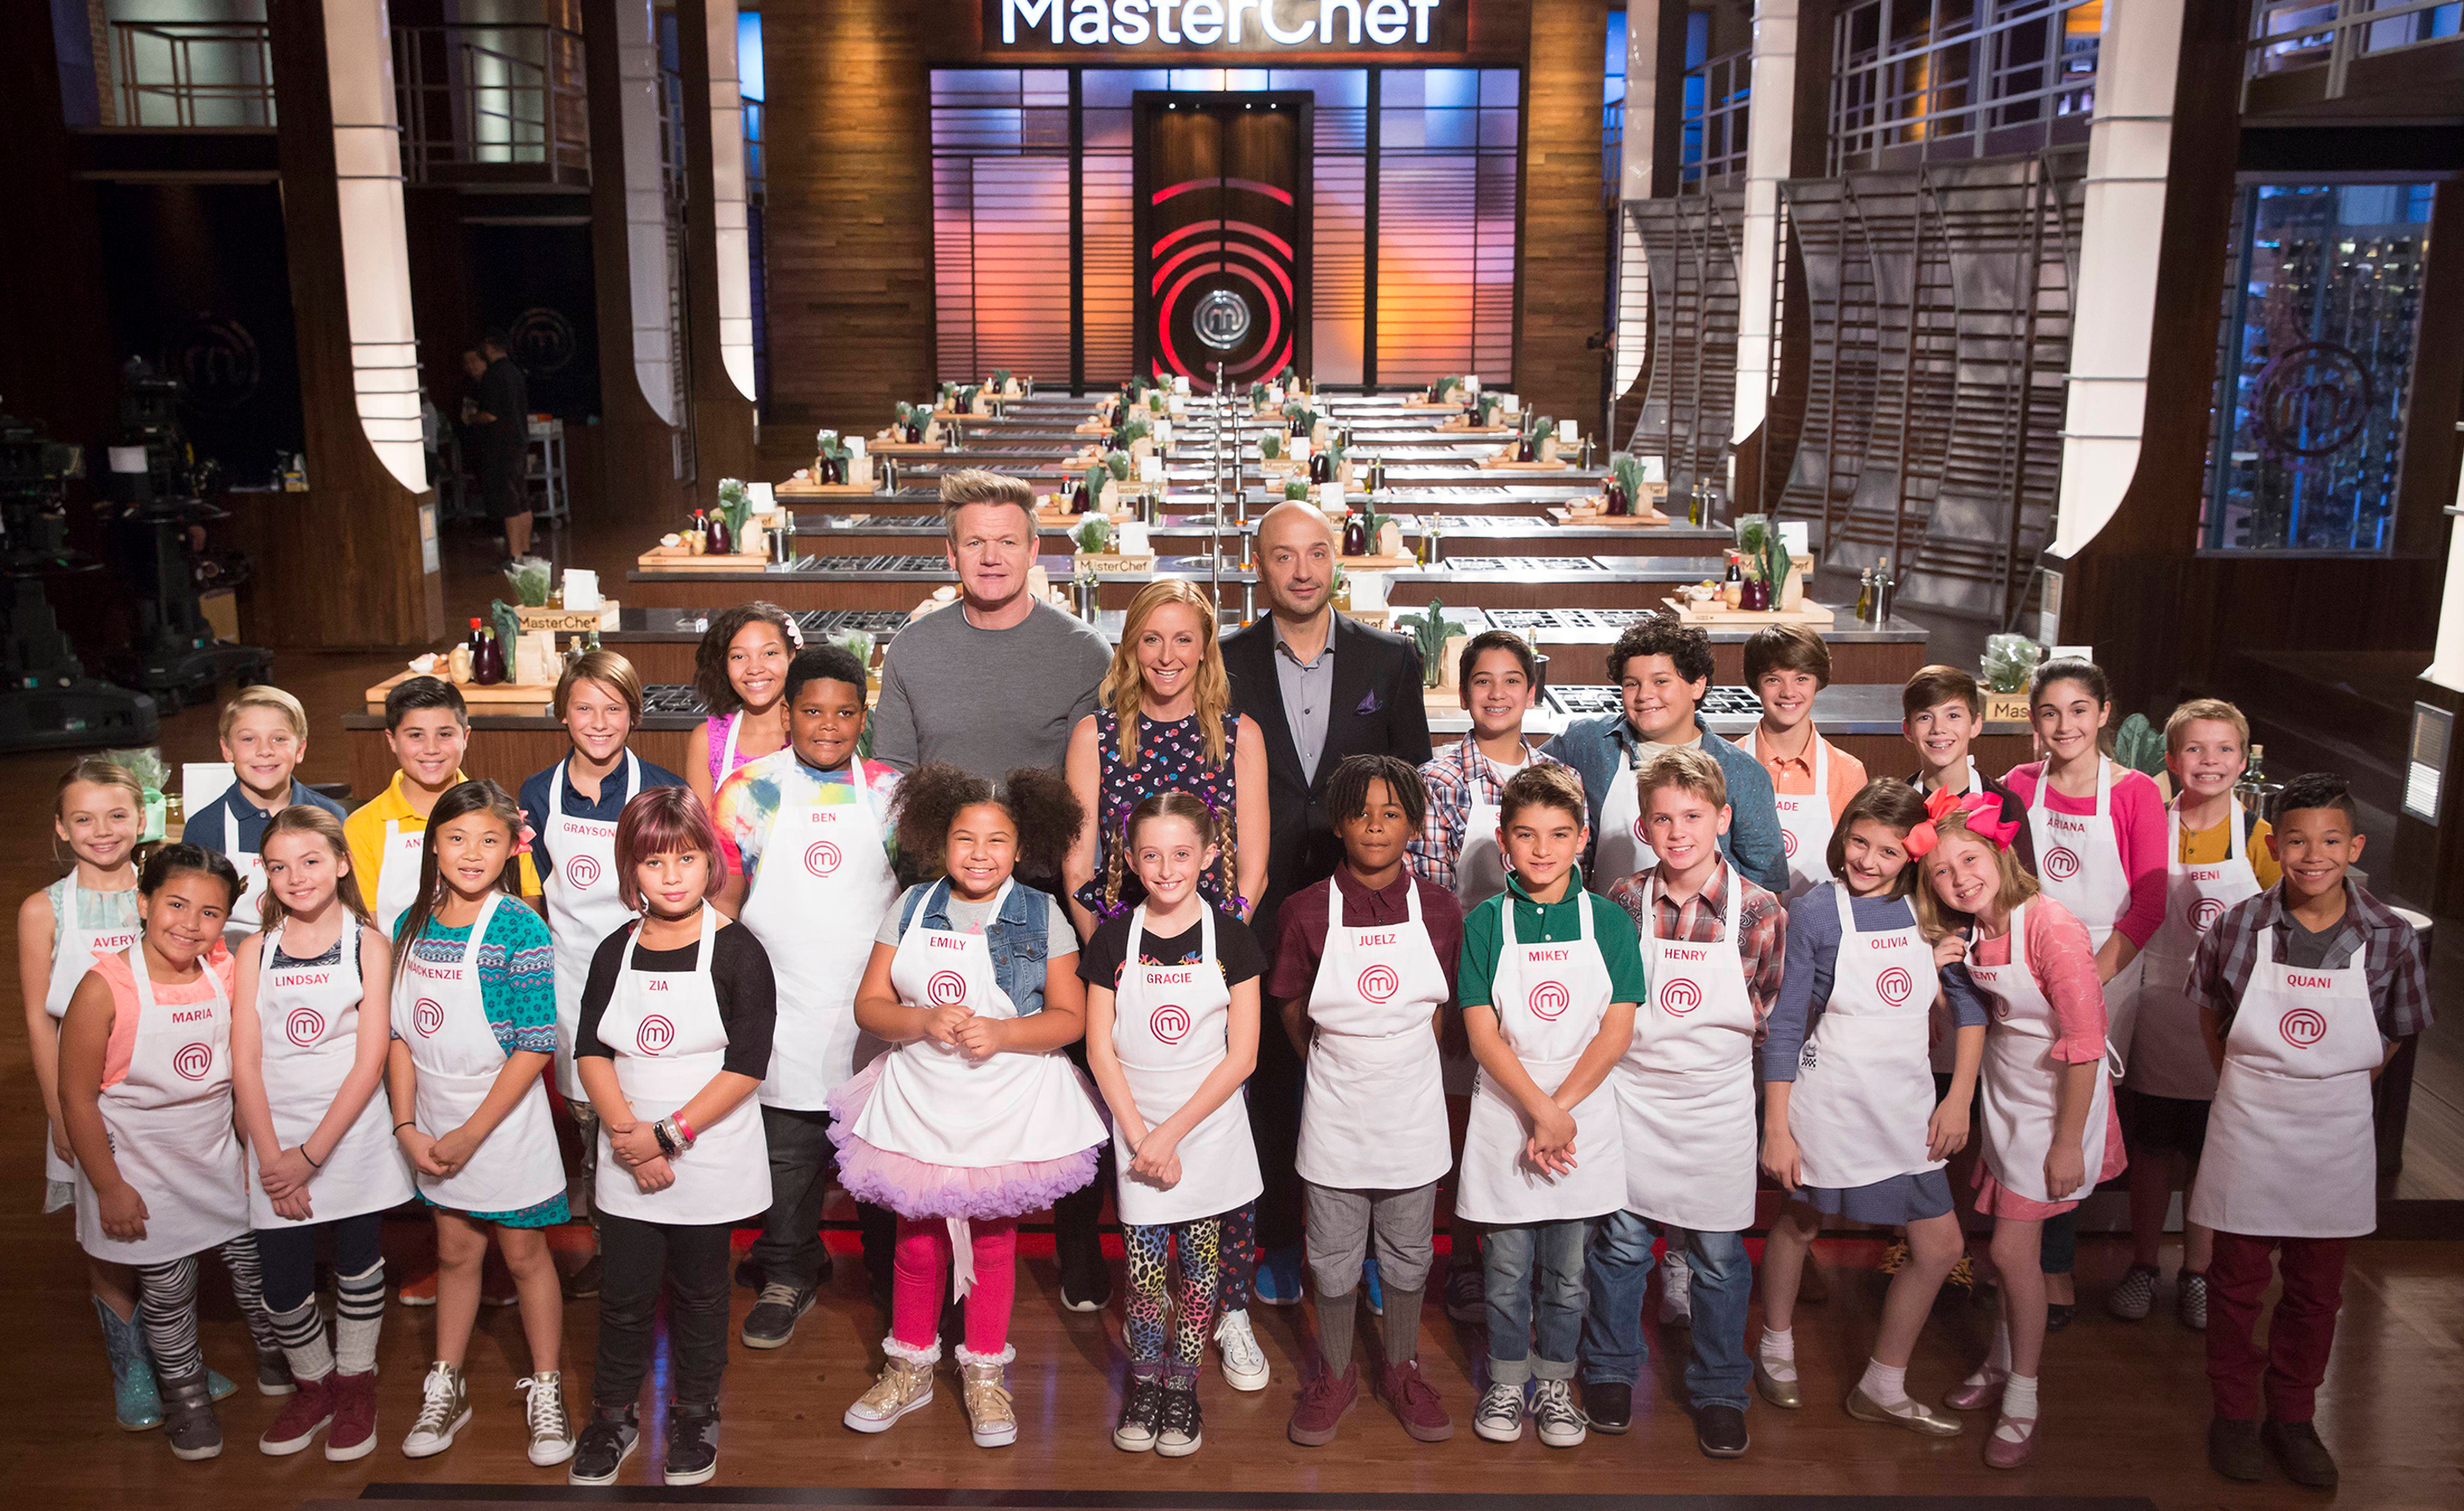 MASTERCHEF: The Top 24 contestants with Host / Judge Gordon Ramsay and Judges Christina Tosi and Joe Bastianich in the Junior Edition: Culinary ABCs time period premiere episode of MASTERCHEF airing Friday, March 9 (8:00-9:00 PM ET/PT) on FOX. (Photo by FOX Image Collection via Getty Images)